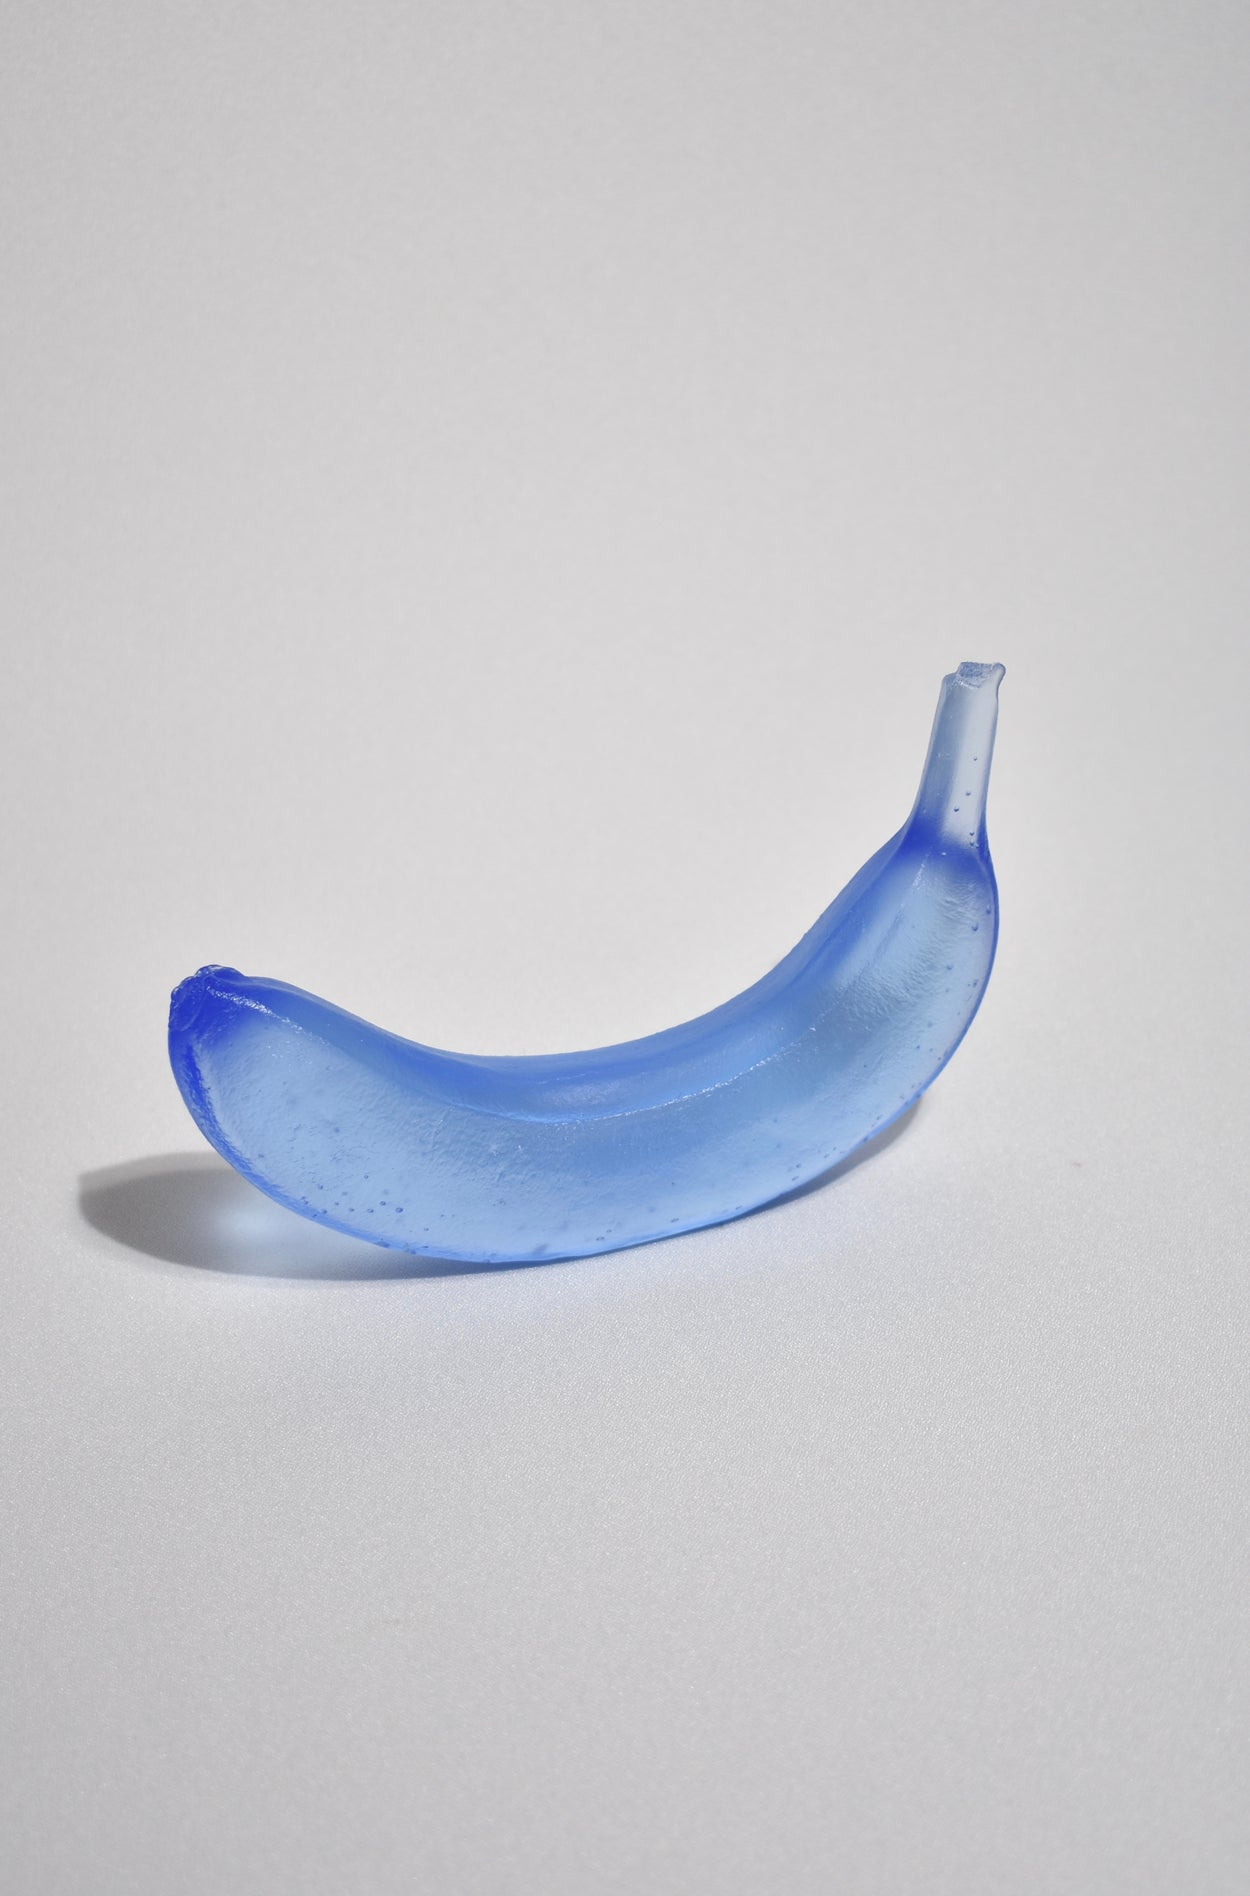 Glass Banana in Blue